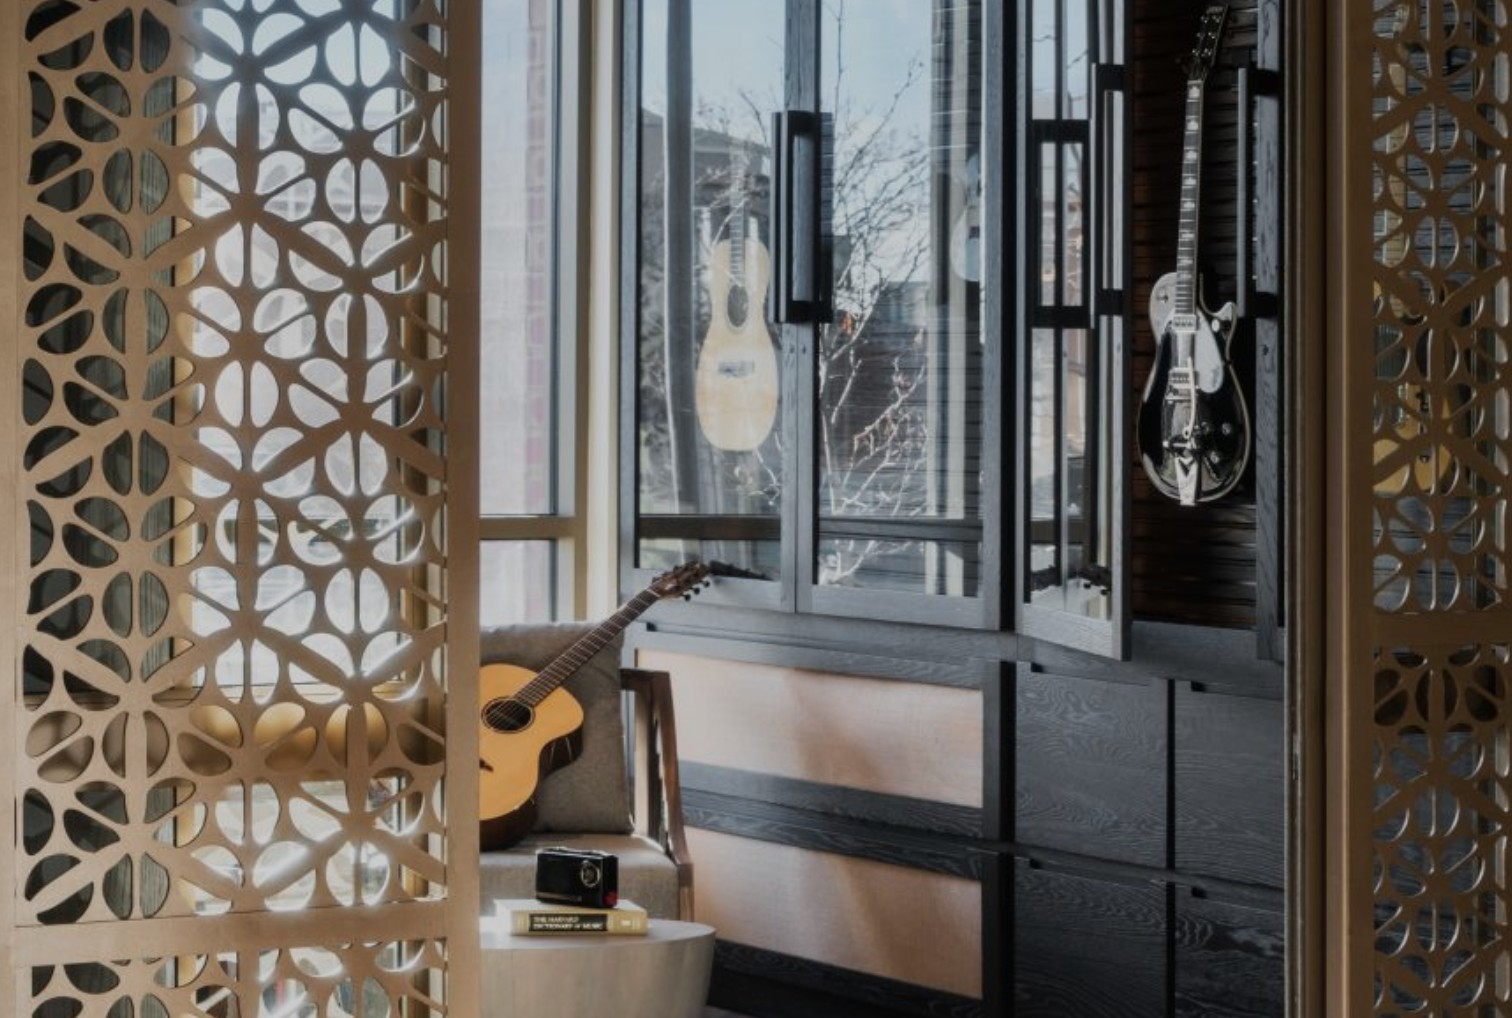 Best Hotels for Music Fans